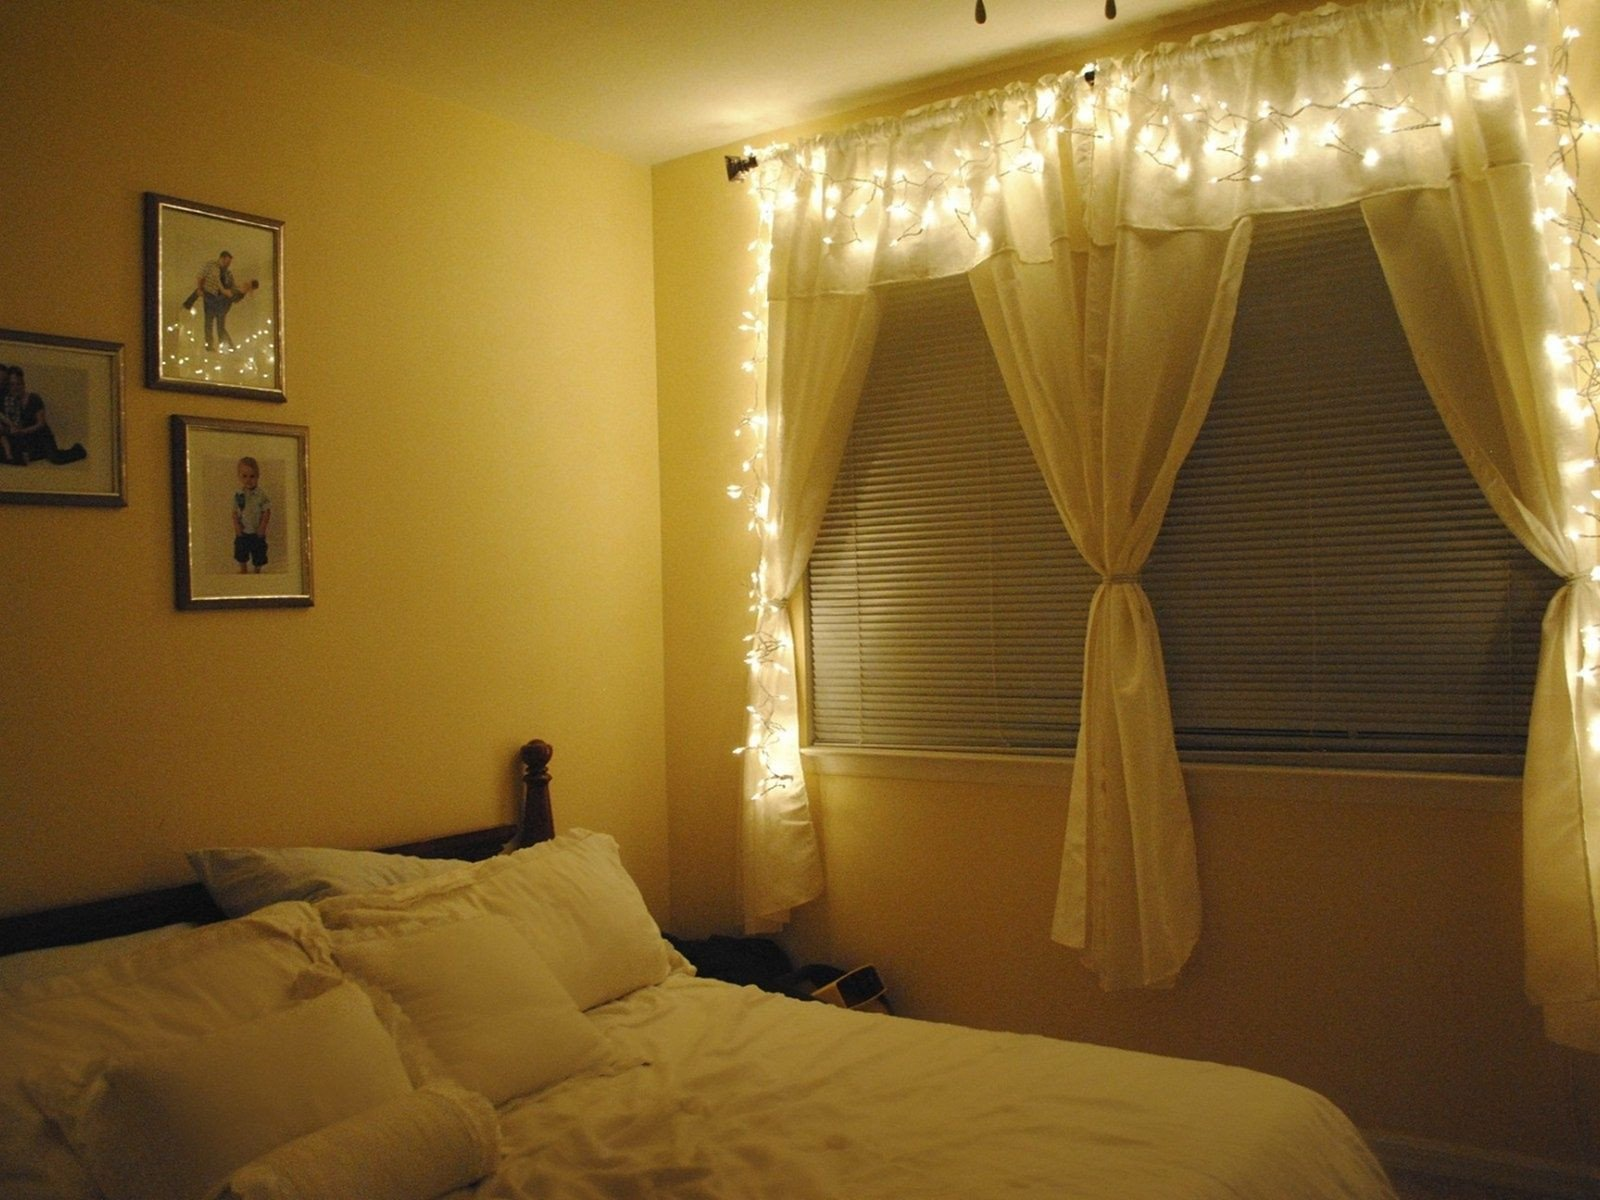 Best String Light for Bedroom Beautiful 35 Amazing Christmas Light Bedroom Decoration Ideas